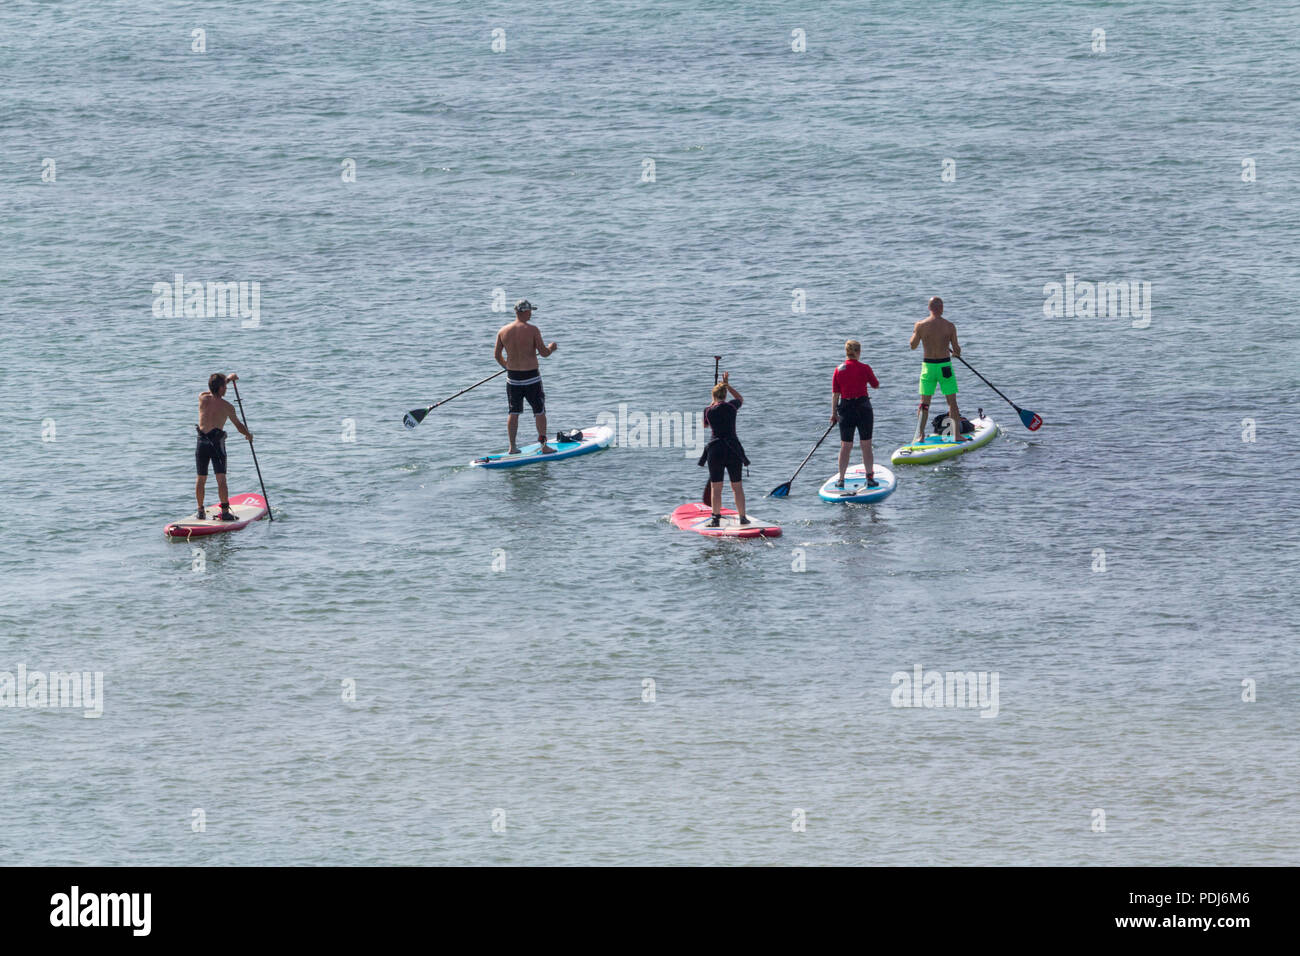 Paddle boarders near seven sisters cliffs UK on a hot Saturday morning 2018 summertime heatwave calm sea hot sun gentle water sport activity. - Stock Image